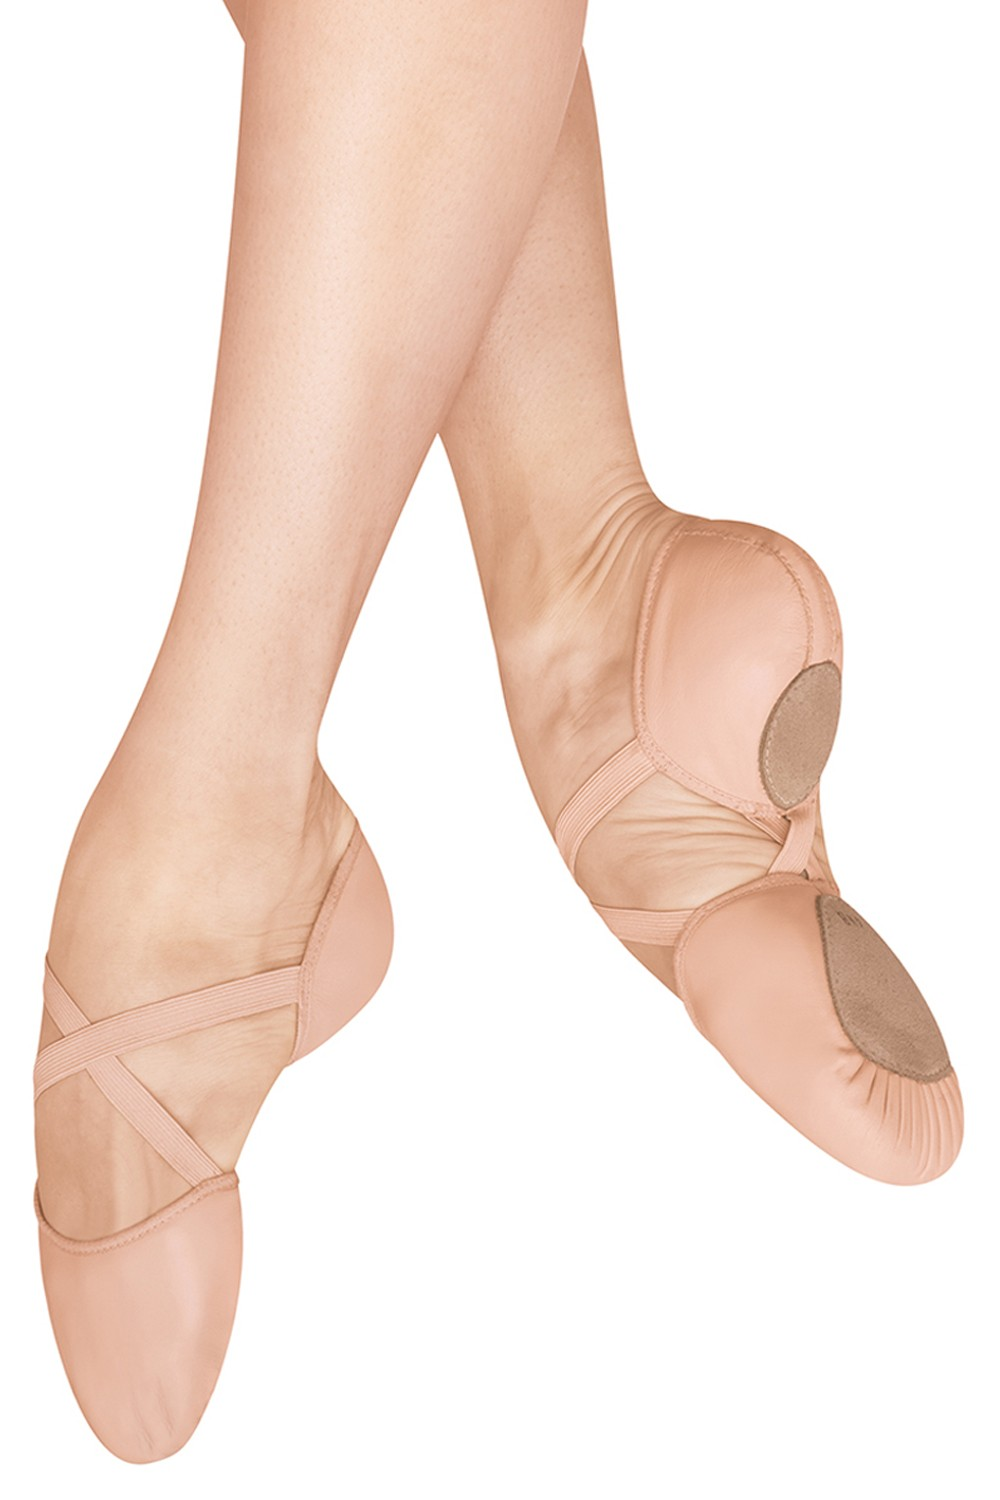 Elastosplit X Piel Women's Ballet Shoes